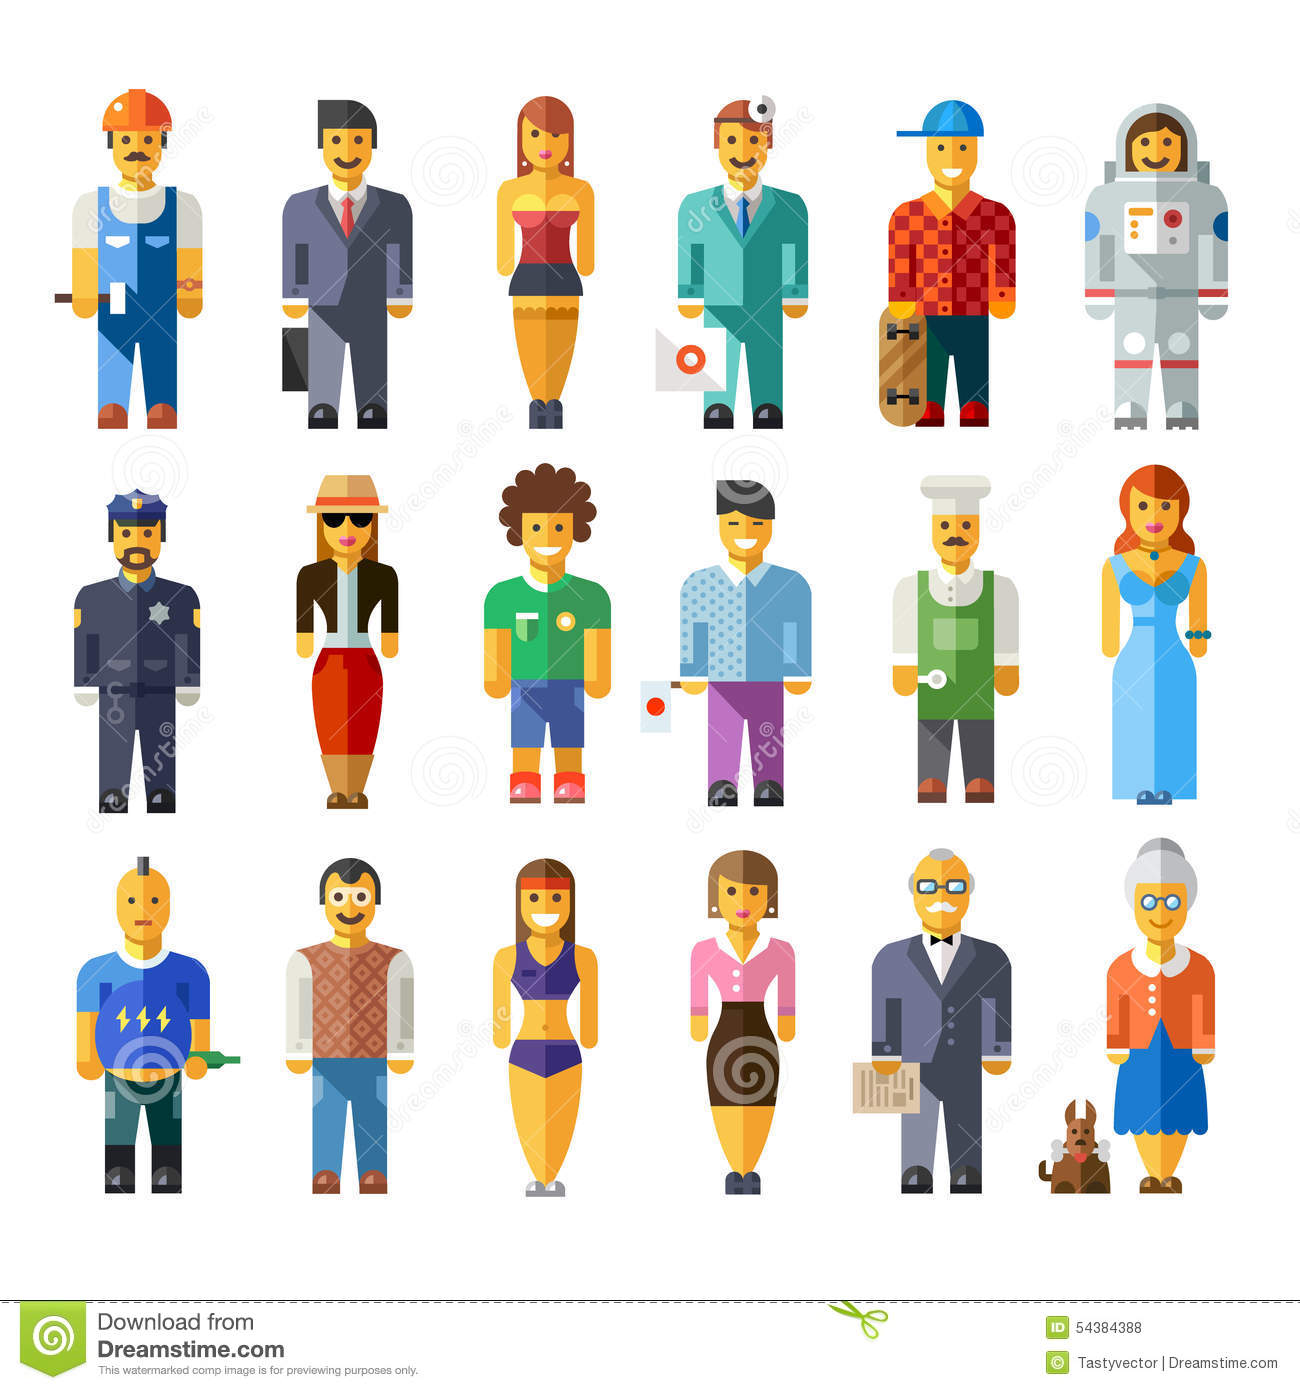 Cartoon Characters Vector : Cartoon characters of different professions vector